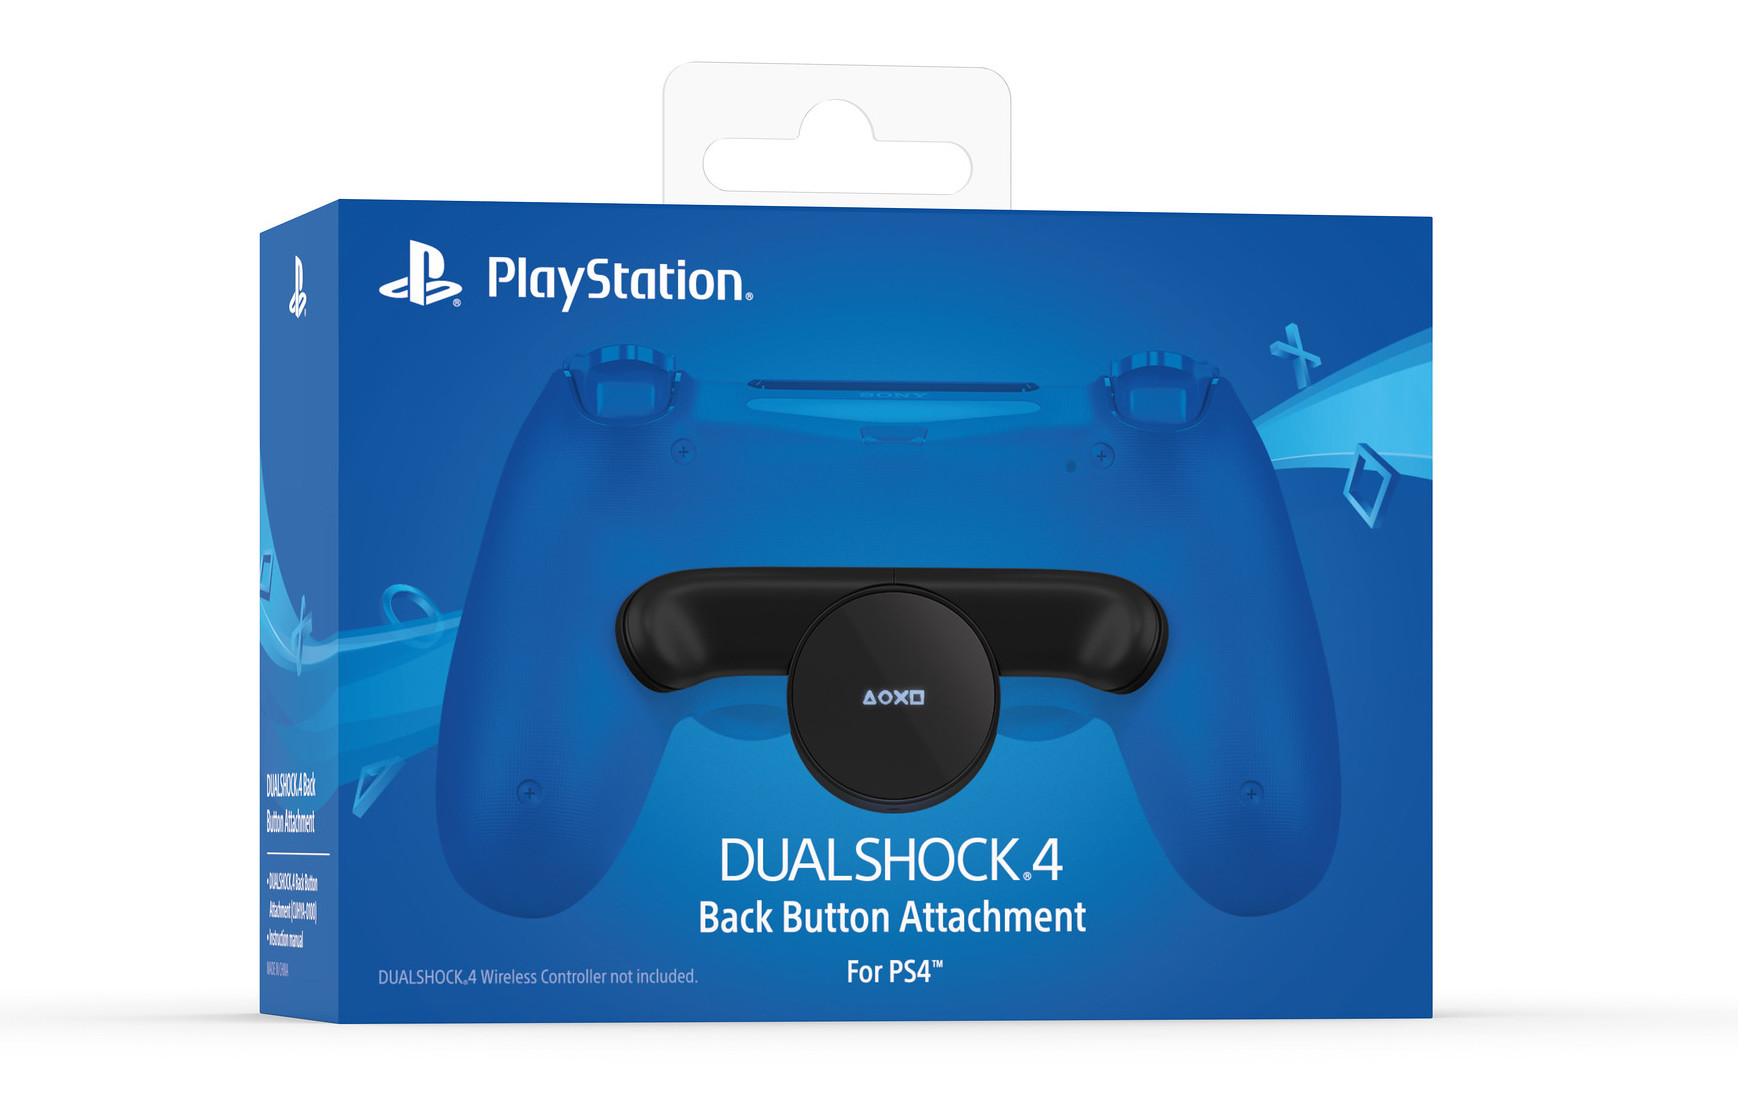 DualShock 4 Back Button Attachment box art